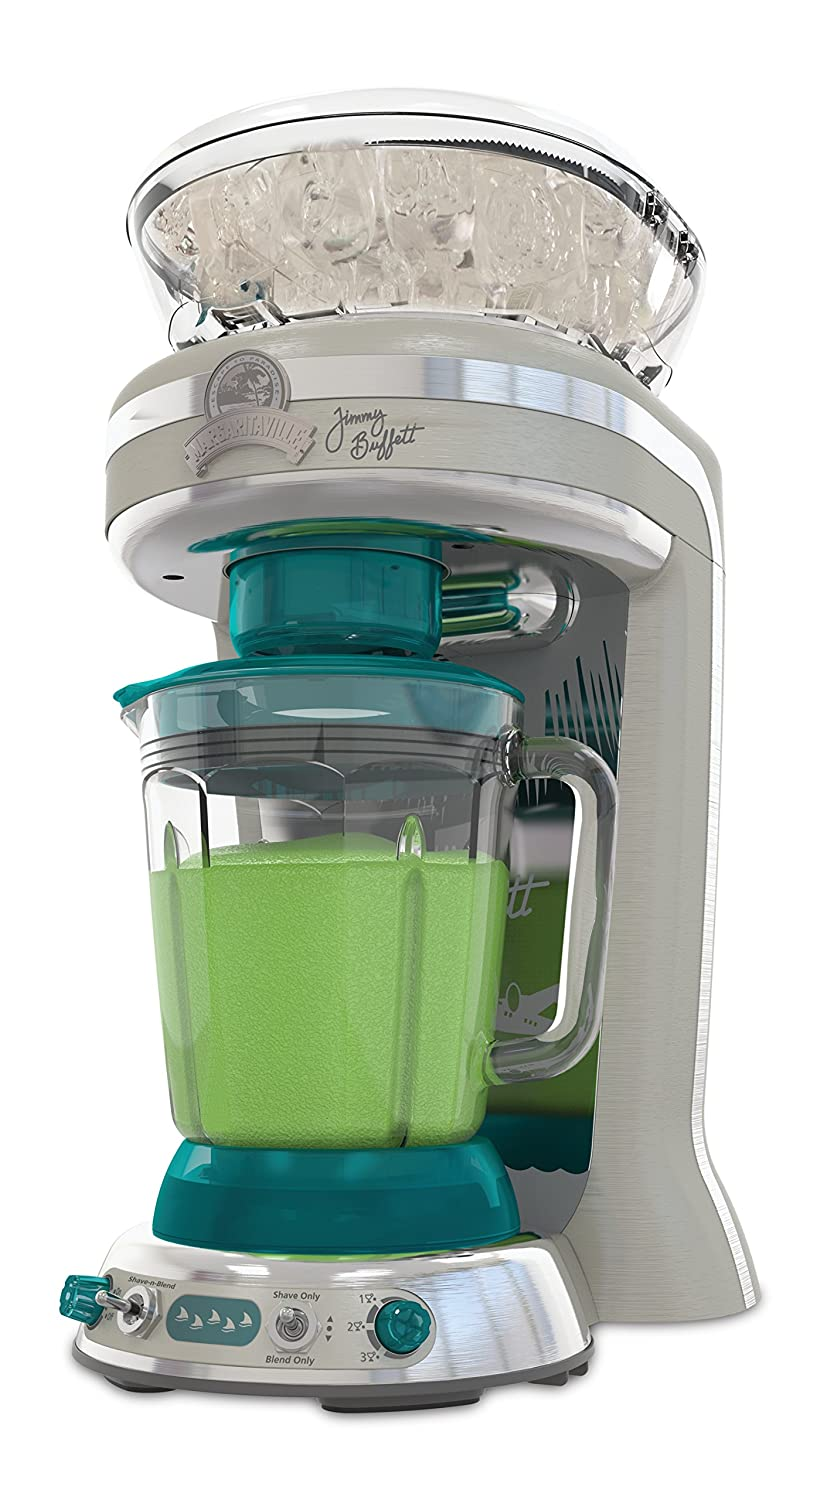 Margaritaville Jimmy Buffet Signature Edition Frozen Concoction Maker, DM1946 DM1946-000-000